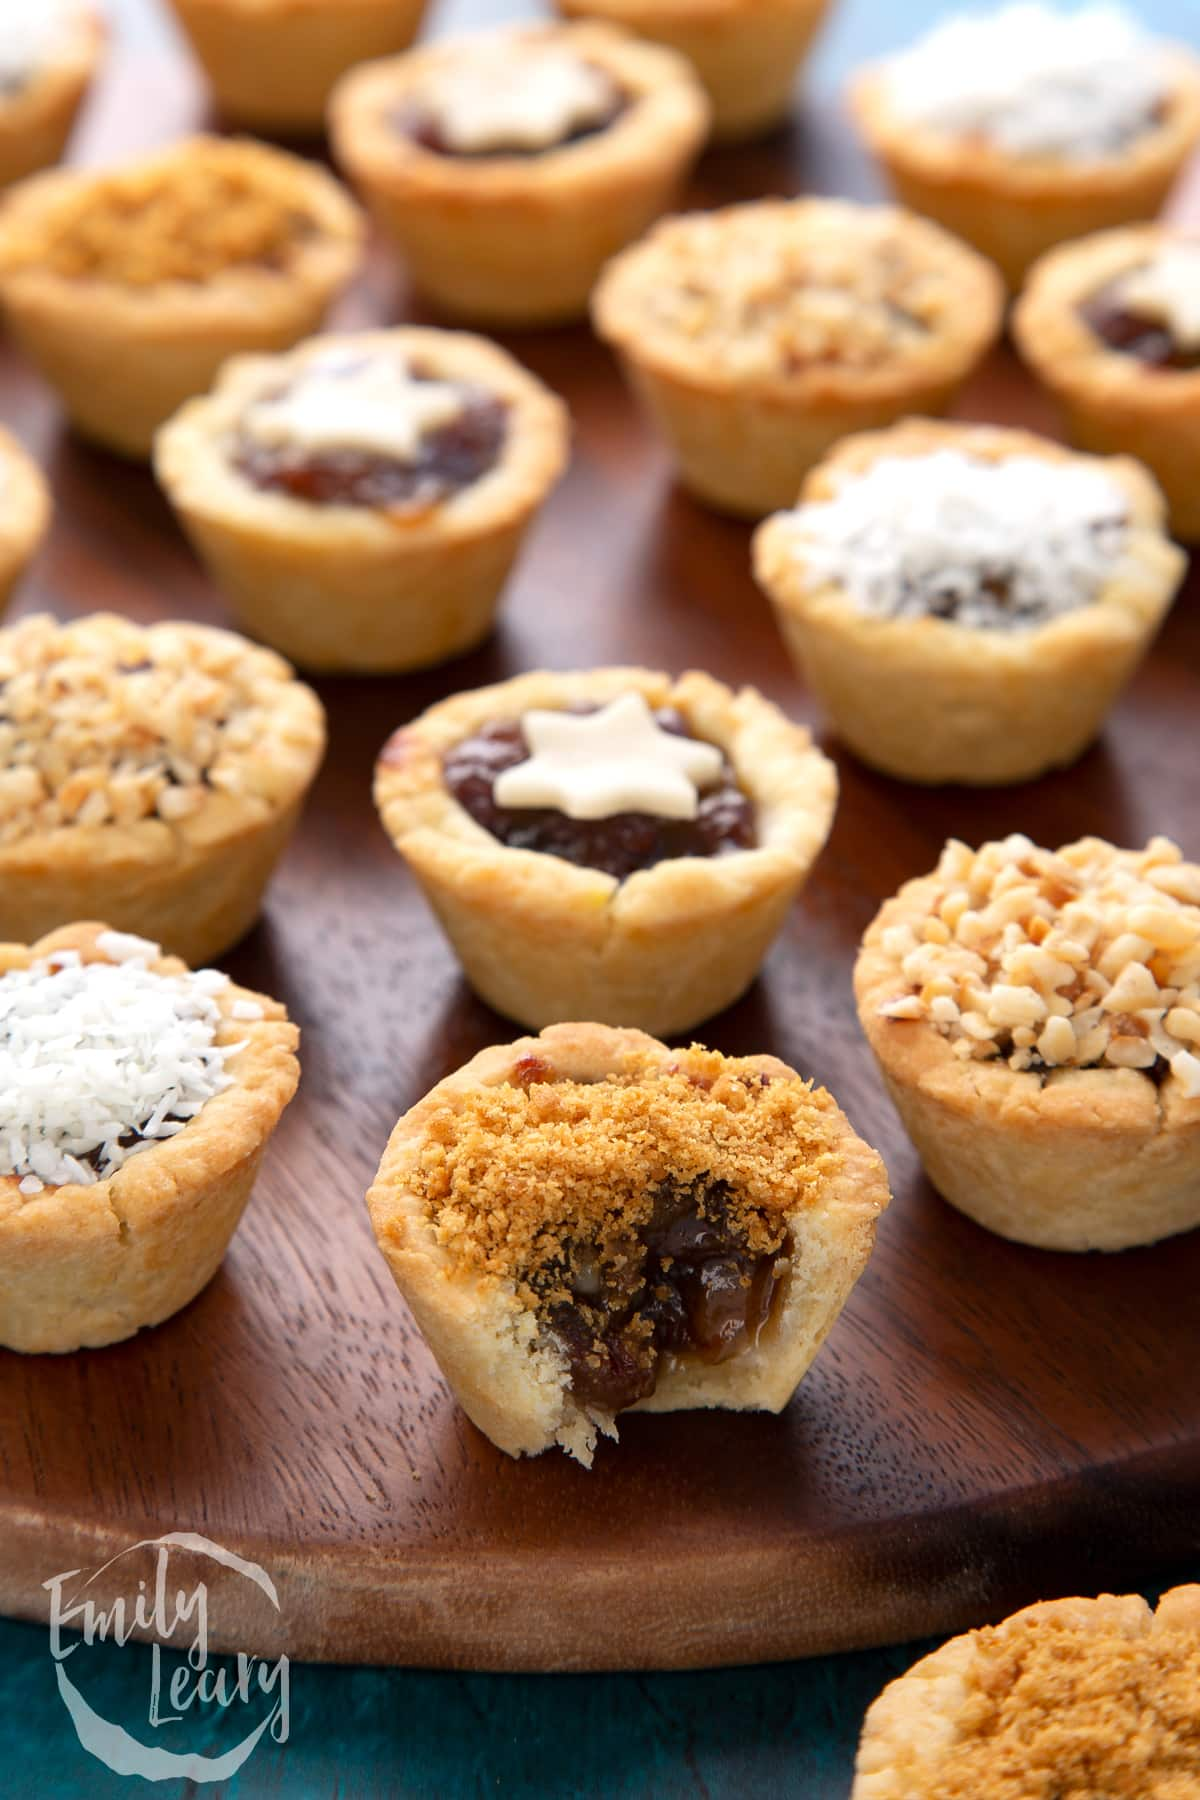 A crushed gingernut topped mini mince pie with a bite out of it. More mini mince pies are also on the dark wooden board.